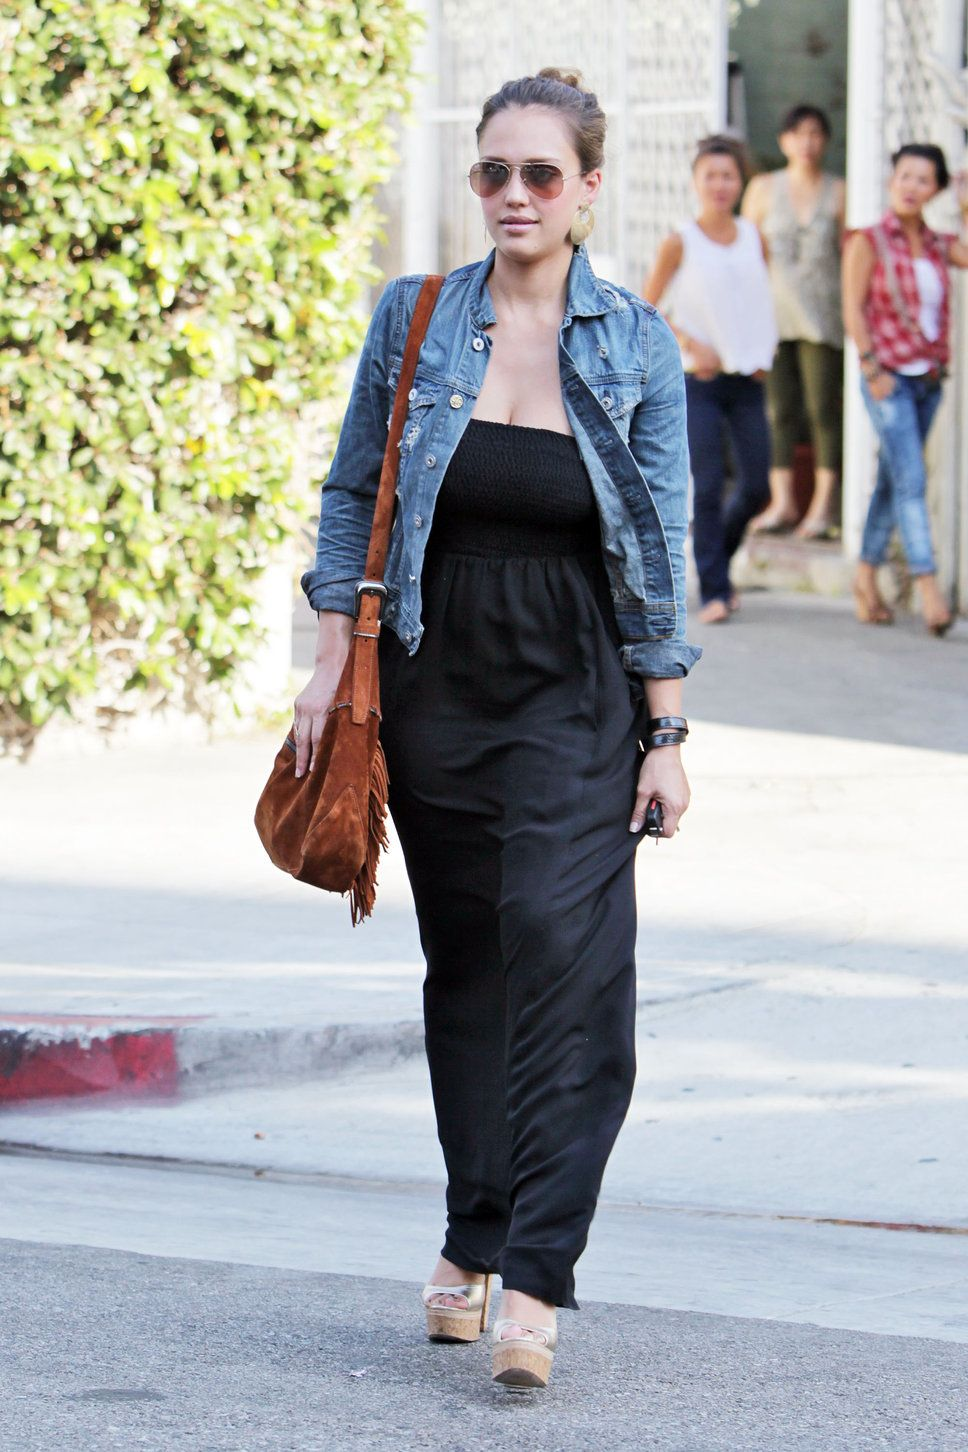 Style Watch: Celebrity looks with denim jacket | Fab Fashion Fix